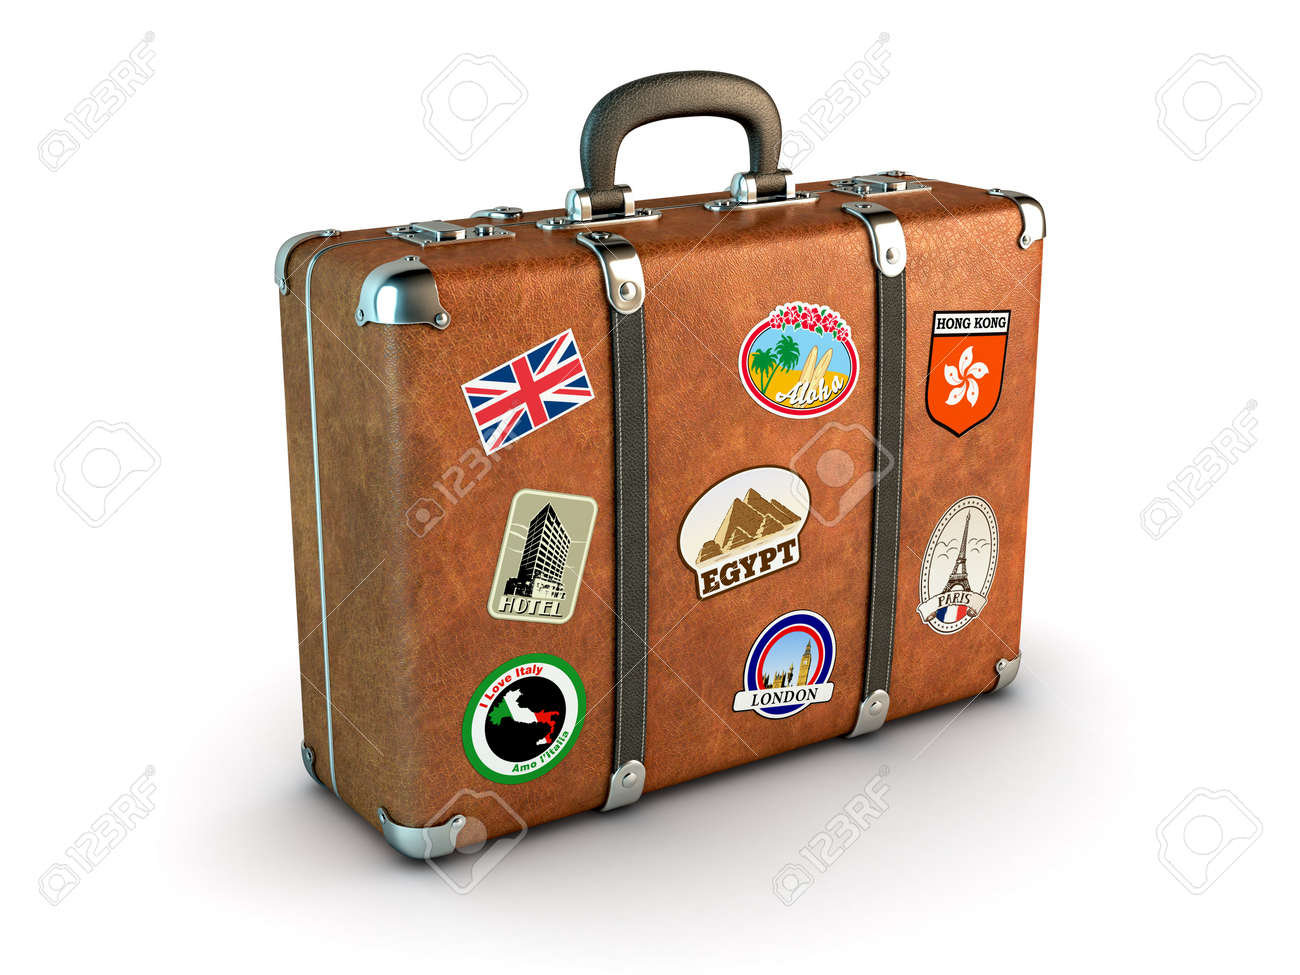 Travel Suitcase With Stickers Computer Generated Image Stock Photo ...